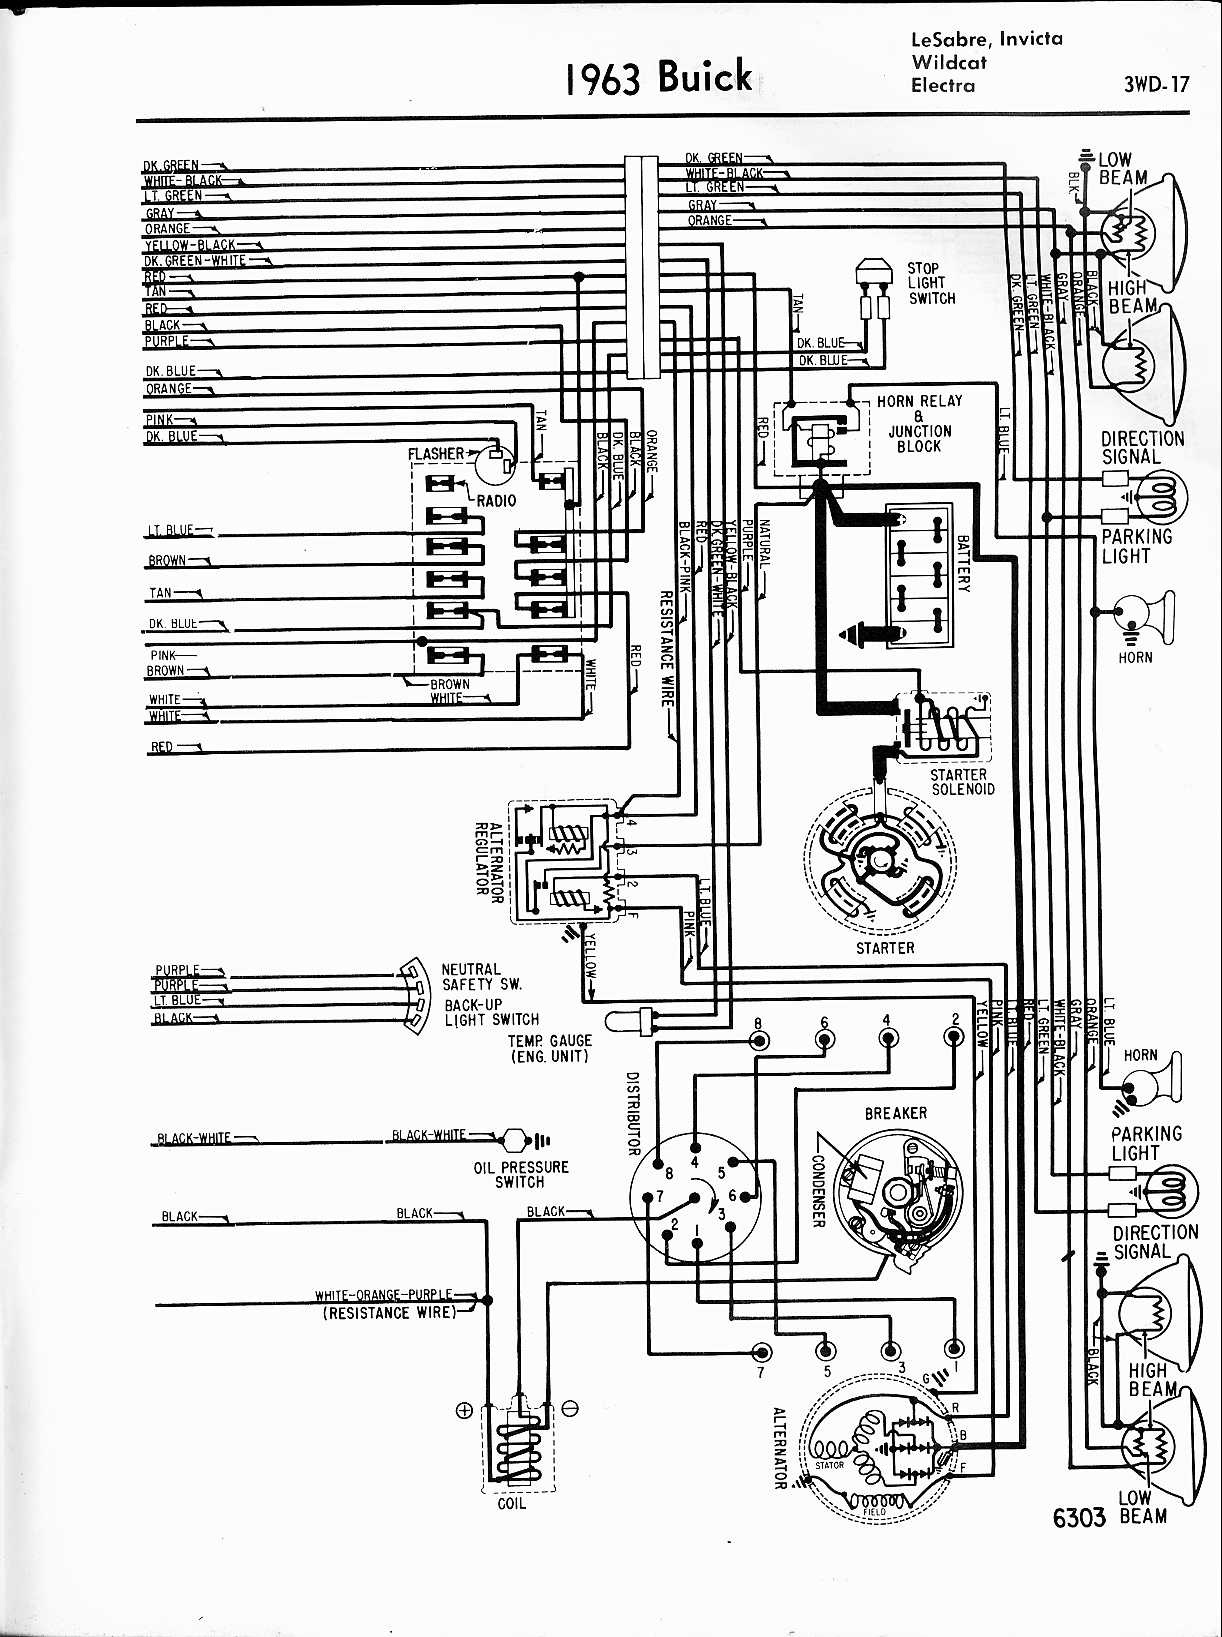 wiring diagram neutral safety on 2000 blazer